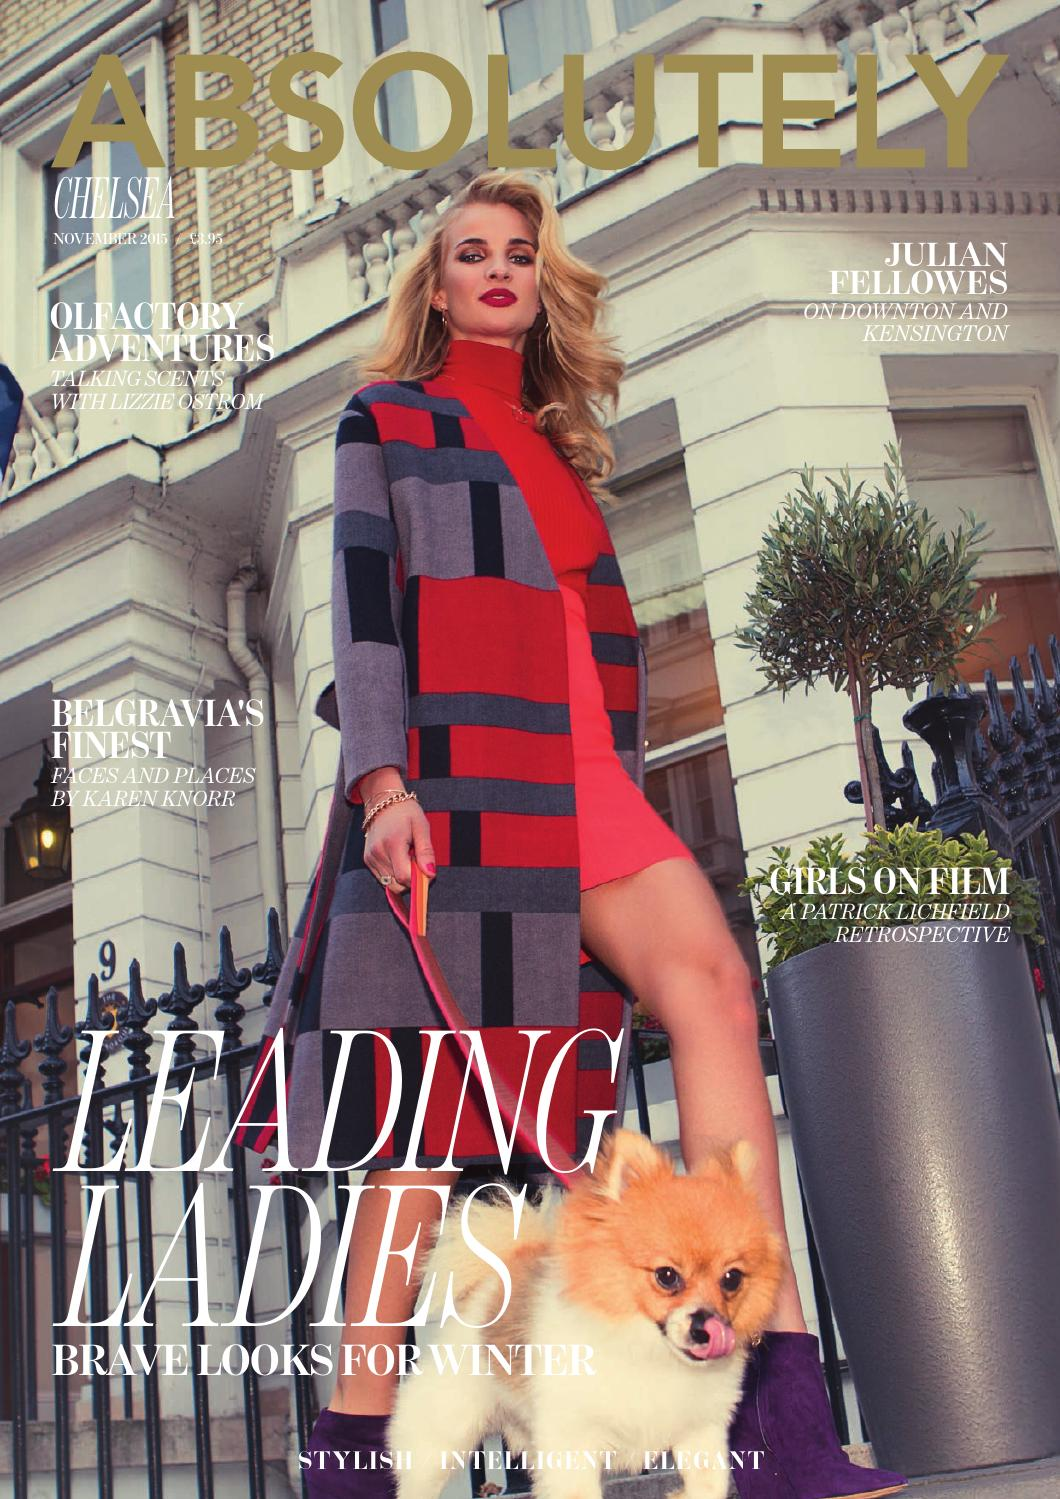 b97548deadd CHELSEA NOVEMBER 2015 by Zest Media London - issuu